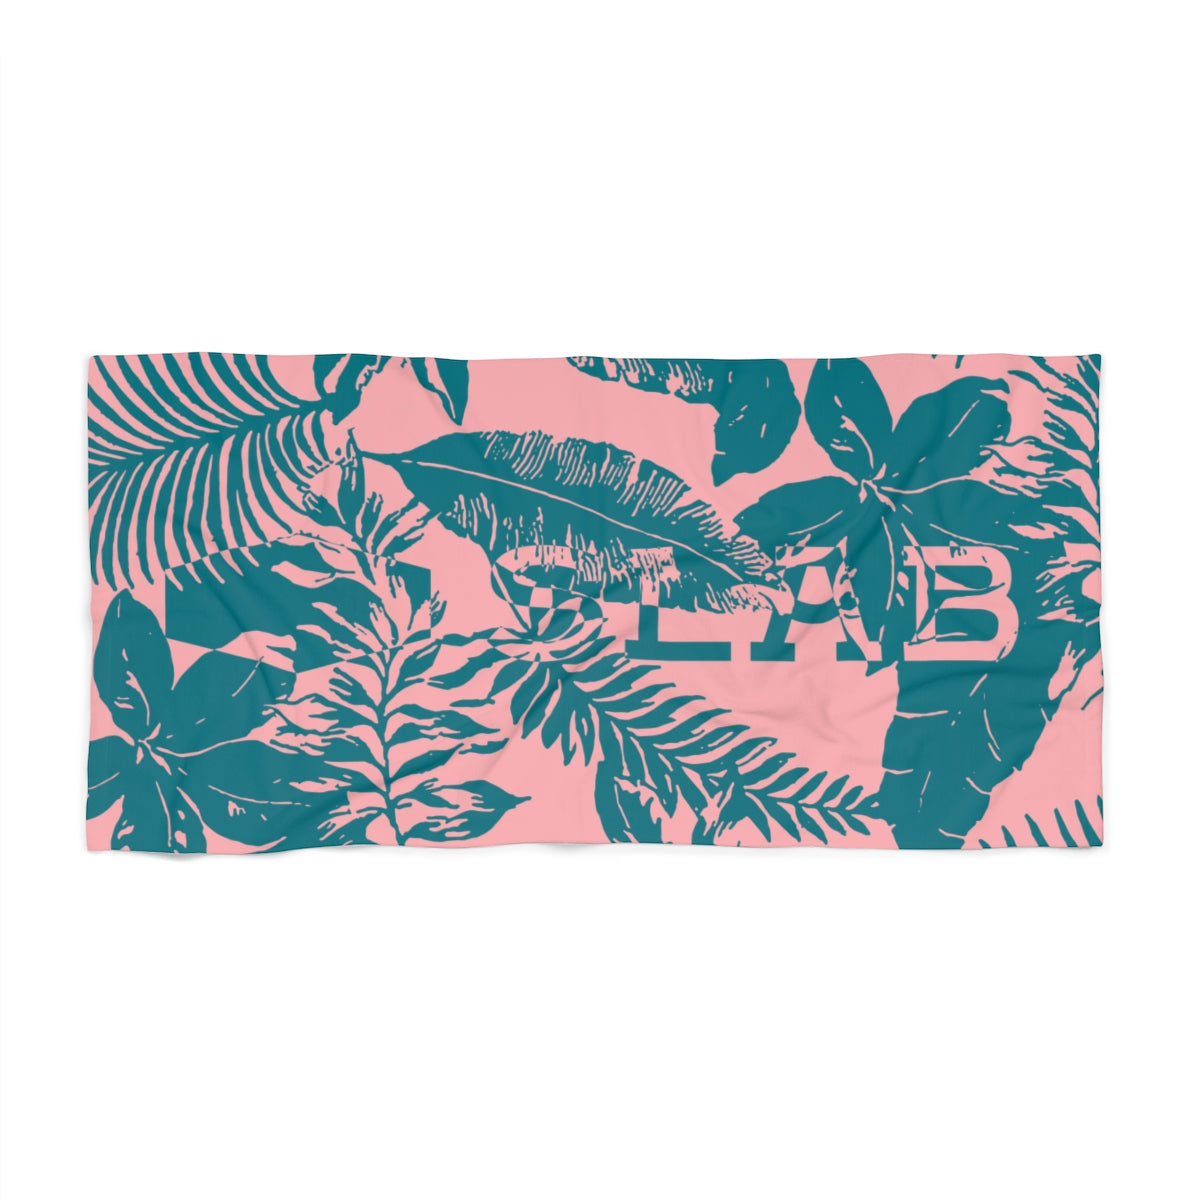 SLAB Palm Gulf Beach Towel